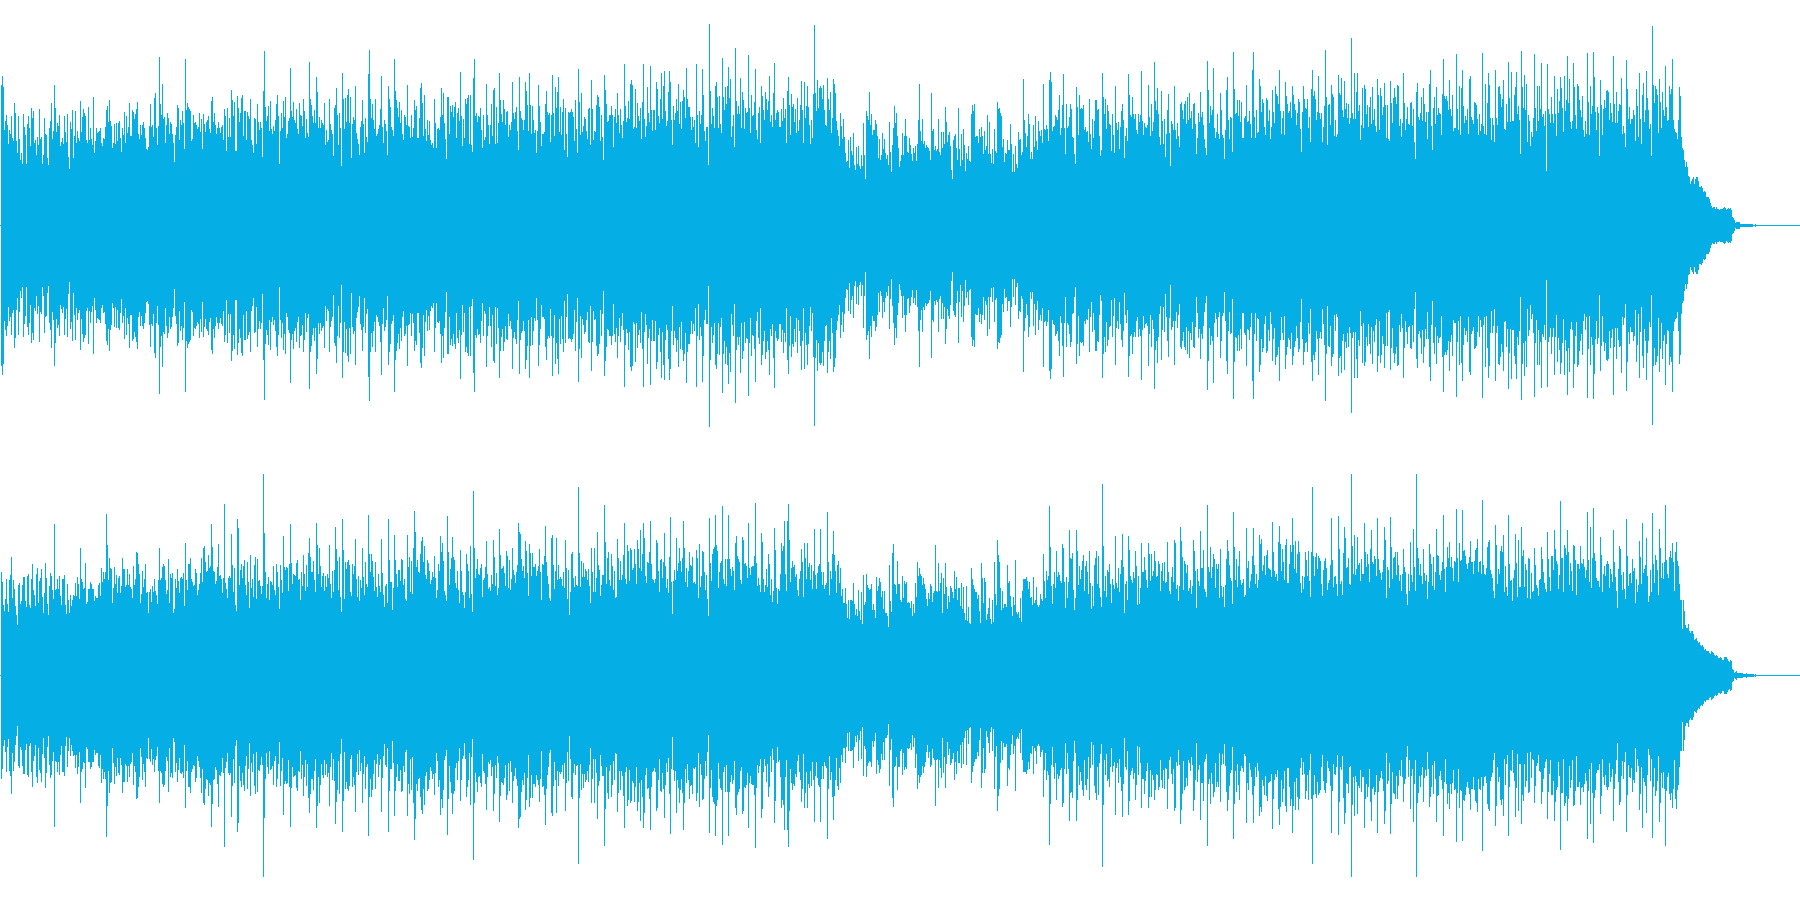 [Drums removed] Up-tempo and refreshing for corporation's reproduced waveform